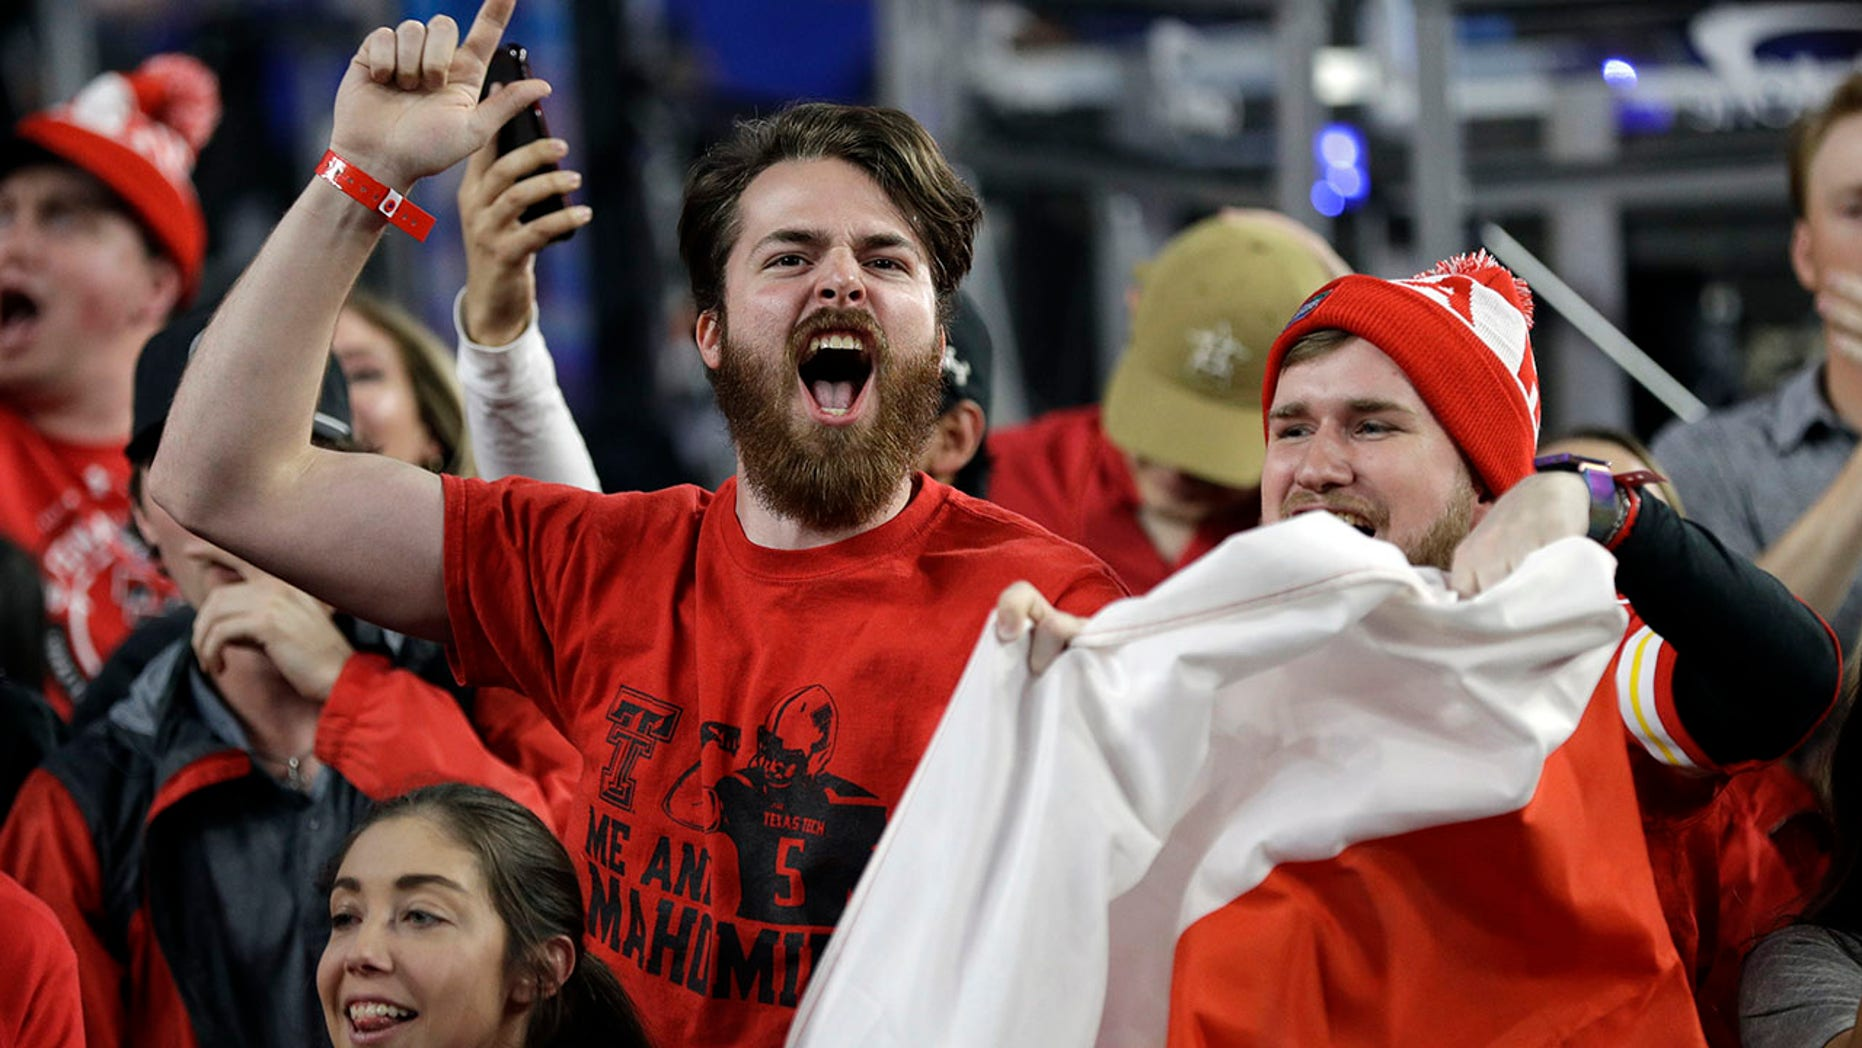 """Texas Tech fans cheer before the semifinals of the Final Four NCAA college basketball tournament against Michigan State, Saturday, April 6, 201<div class=""""e3lan e3lan-in-post1""""><script async src=""""//pagead2.googlesyndication.com/pagead/js/adsbygoogle.js""""></script> <!-- Text_Image --> <ins class=""""adsbygoogle""""      style=""""display:block""""      data-ad-client=""""ca-pub-6192903739091894""""      data-ad-slot=""""3136787391""""      data-ad-format=""""auto""""      data-full-width-responsive=""""true""""></ins> <script> (adsbygoogle = window.adsbygoogle 